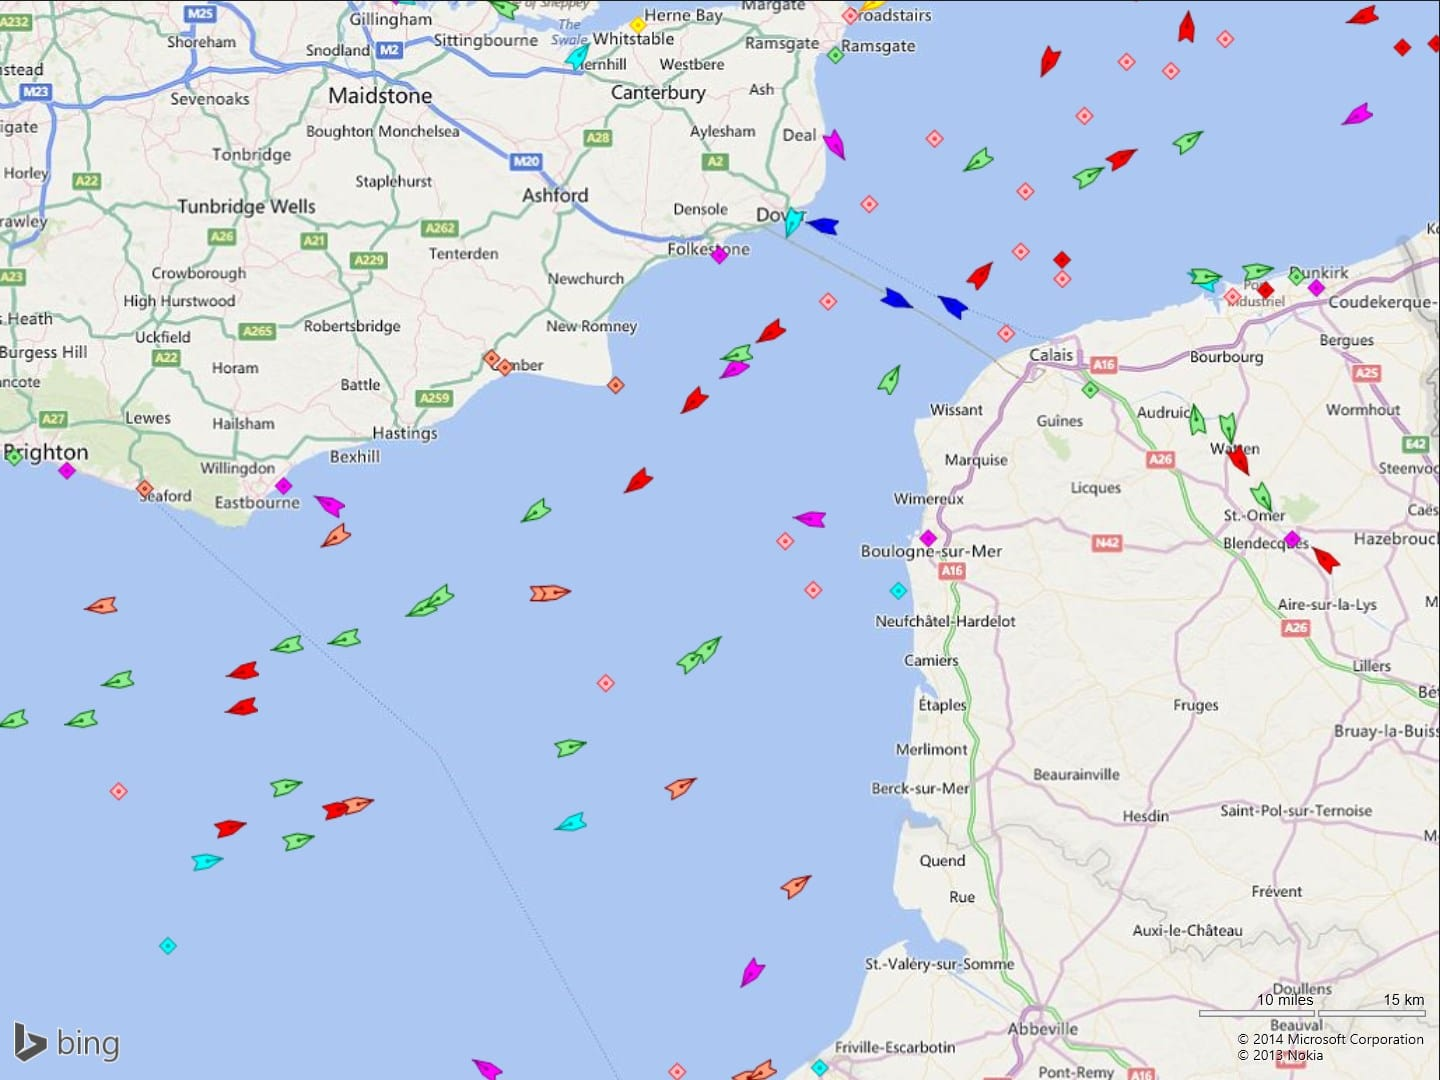 MarineTraffic ship positions